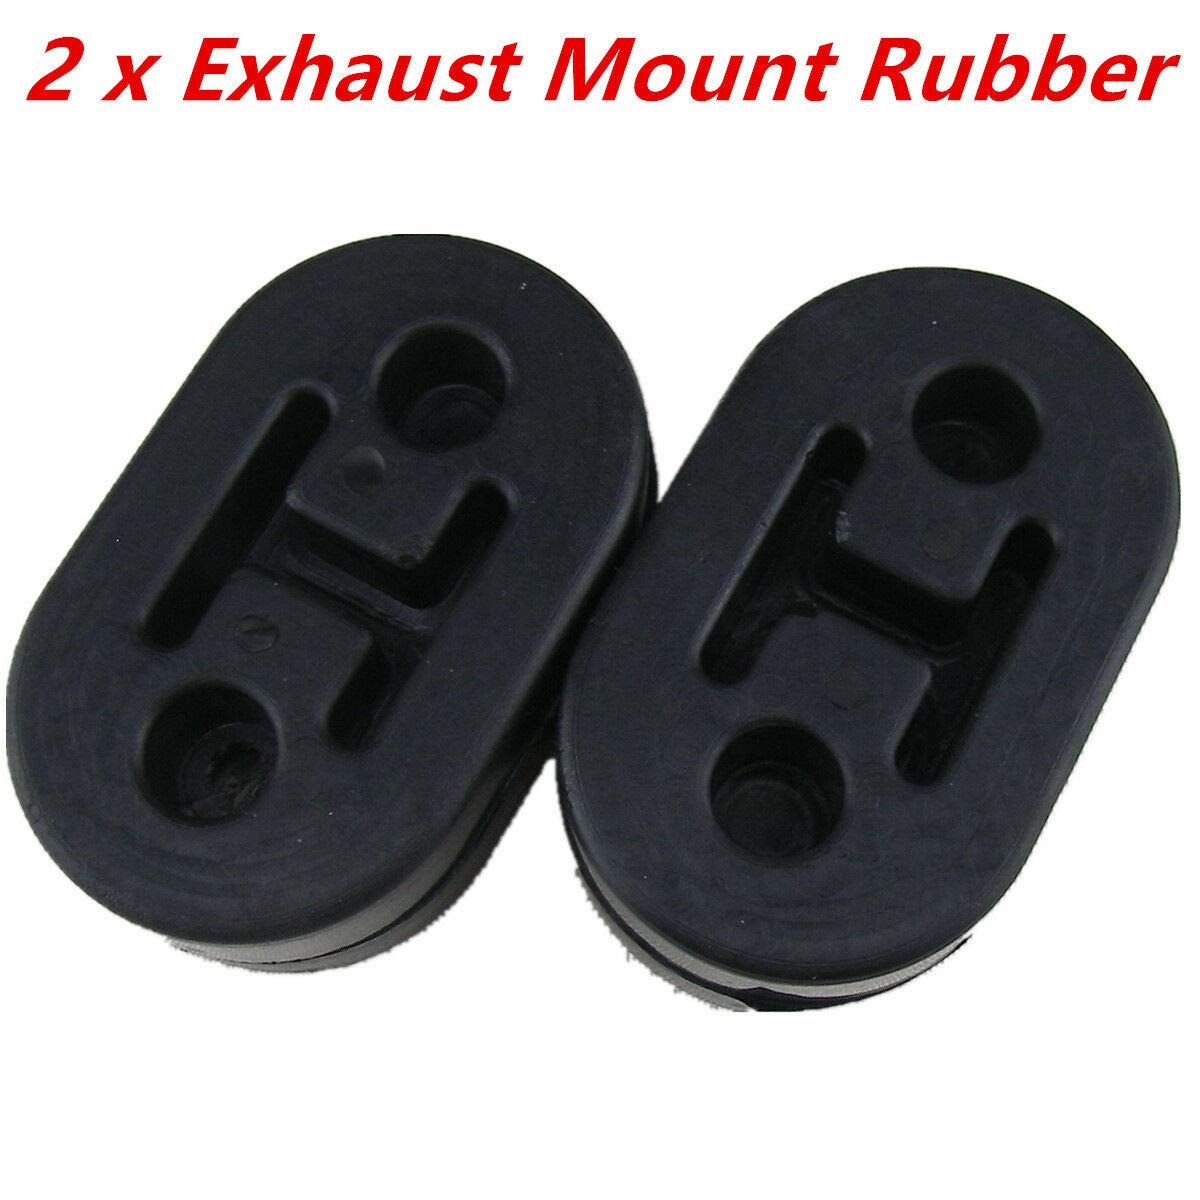 FidgetGear 2x Universal Exhaust Mount Repair Hanger Bracket Heavy Duty Rubber Replacements